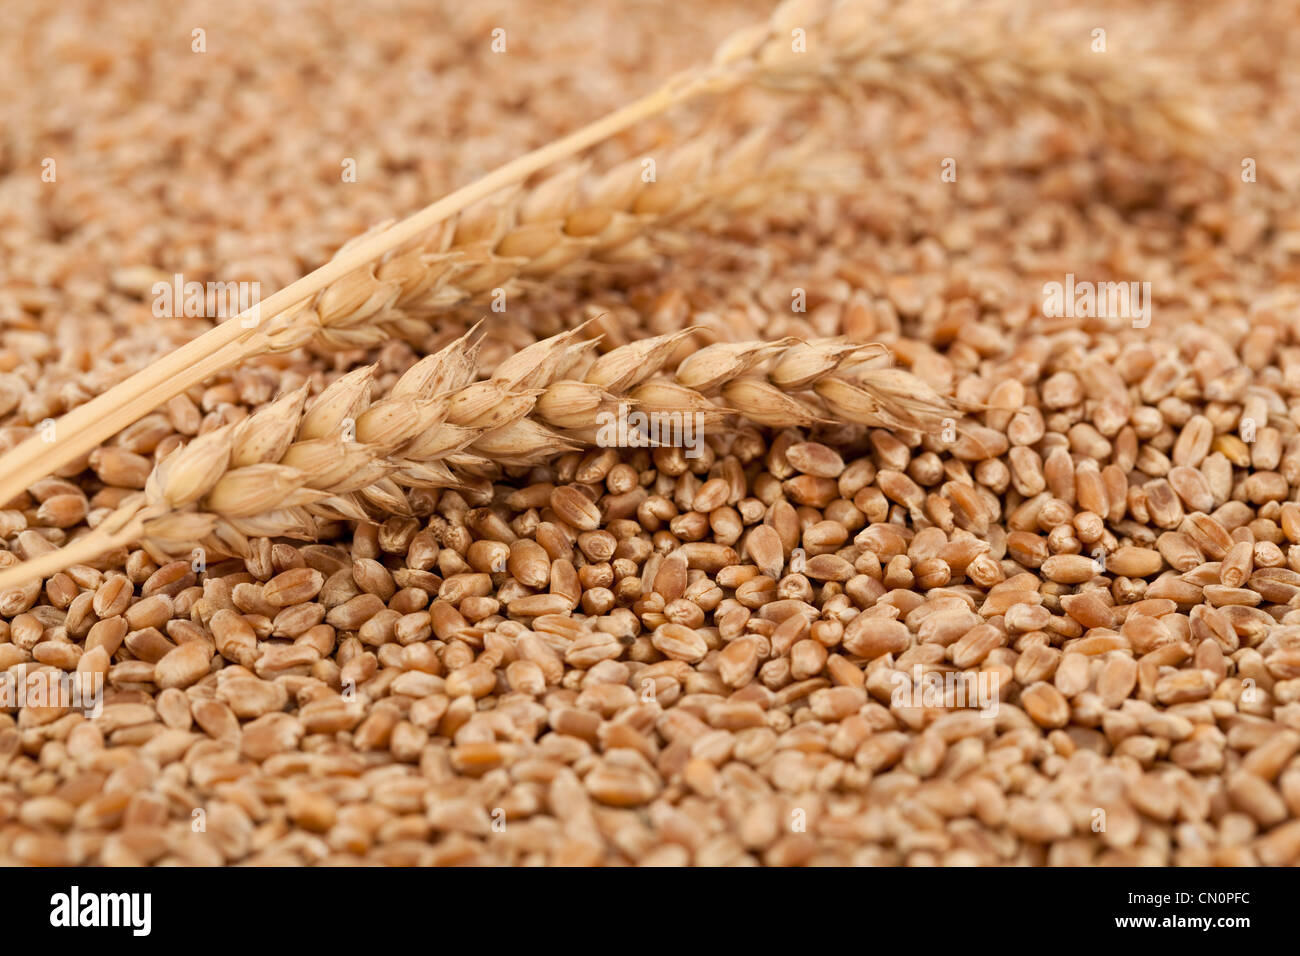 dry and raw wheat as background - Stock Image